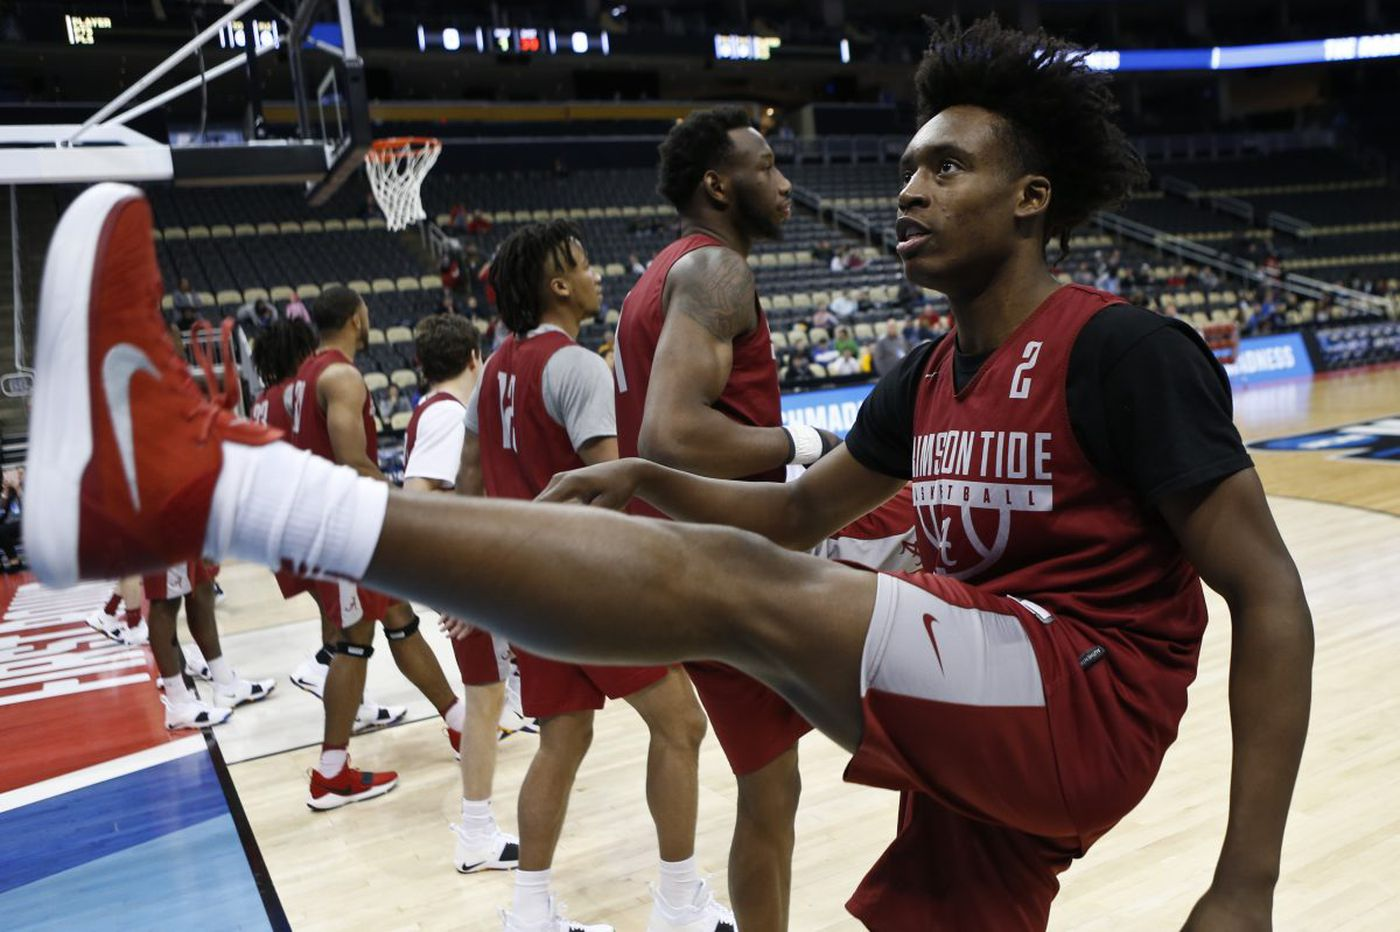 Villanova-Alabama: What to watch in March Madness Round of 32 matchup